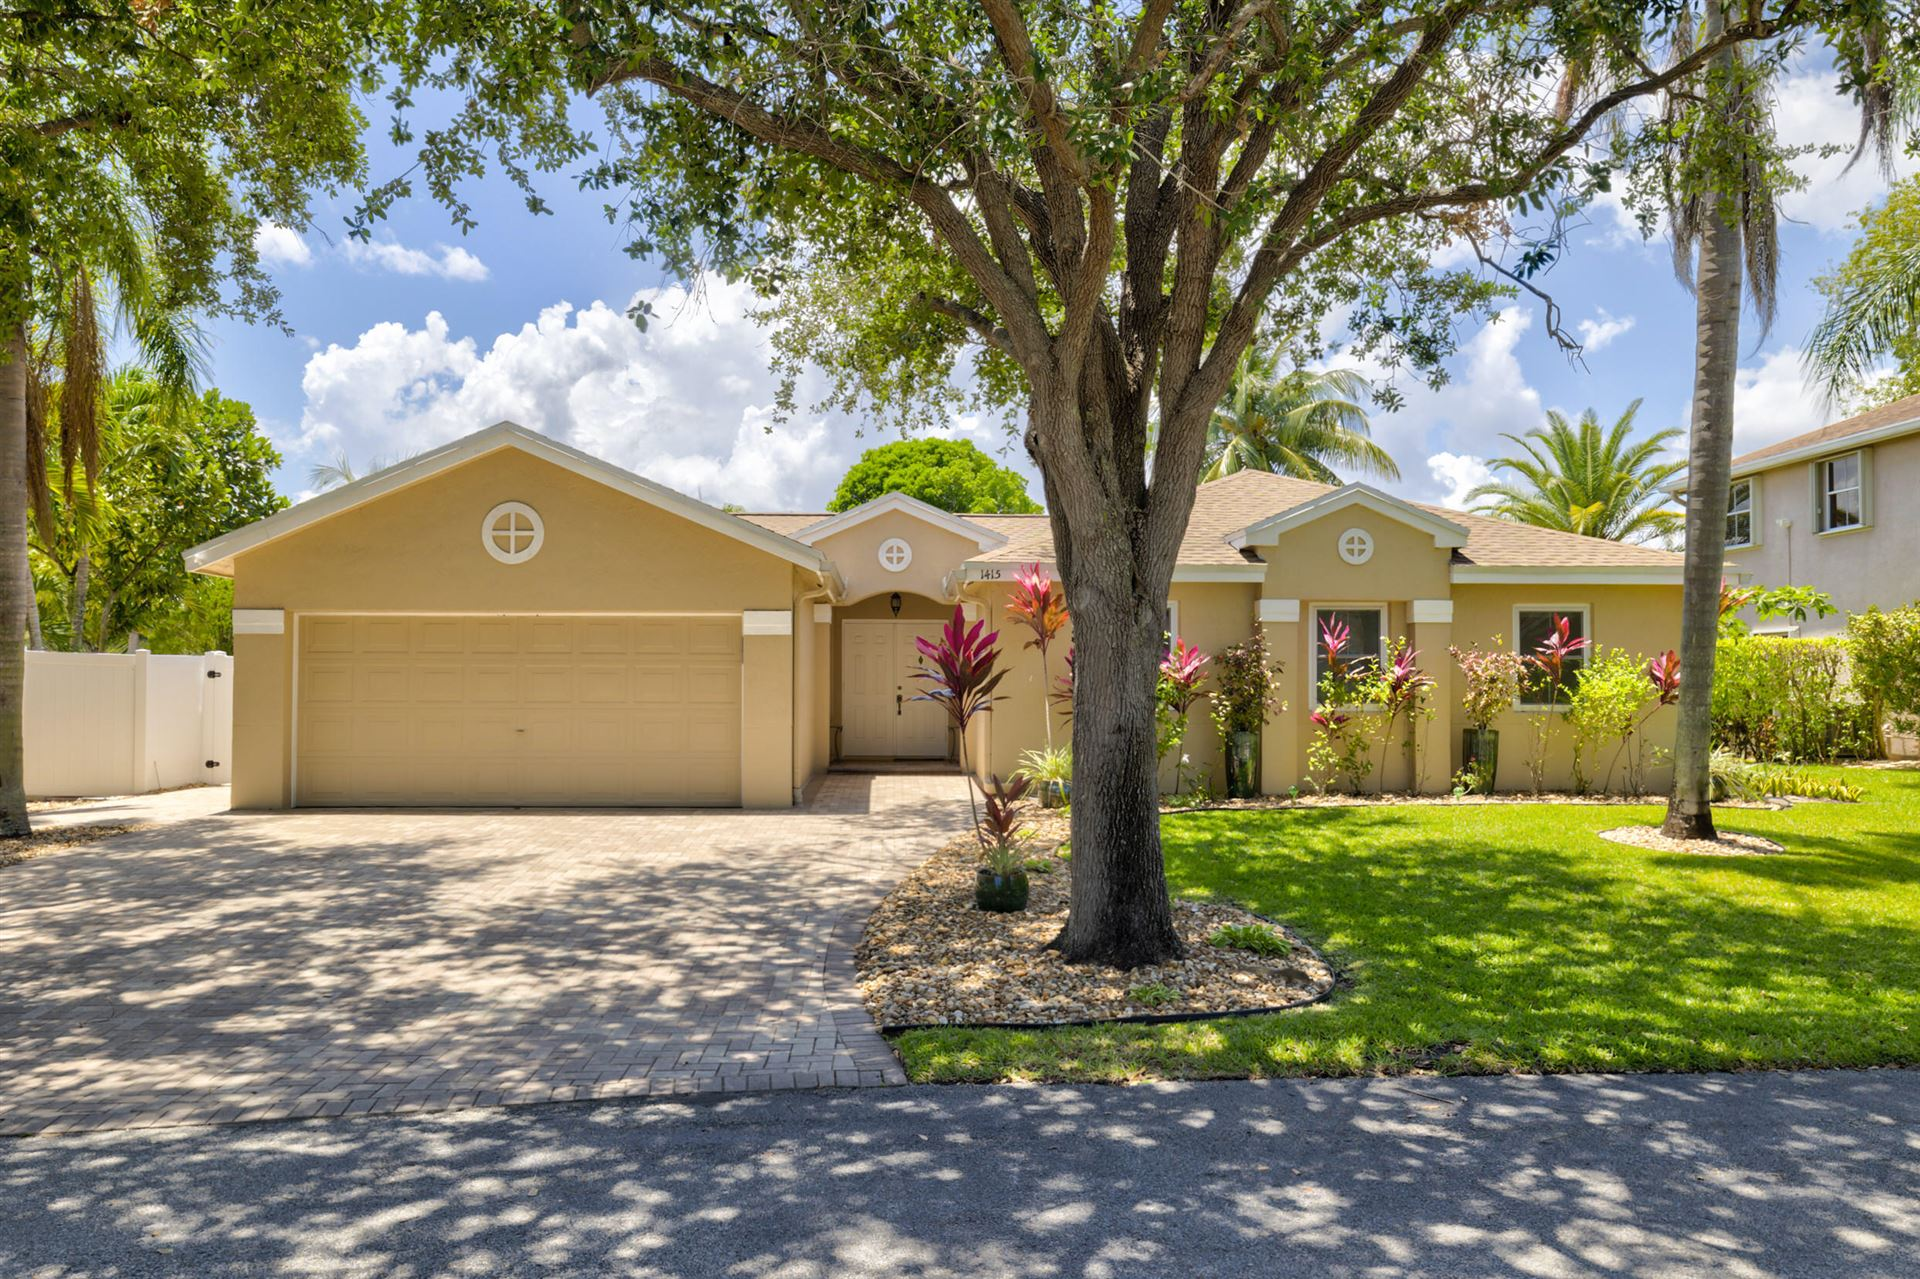 Photo of 1415 NW 49 Avenue, Coconut Creek, FL 33063 (MLS # RX-10715980)